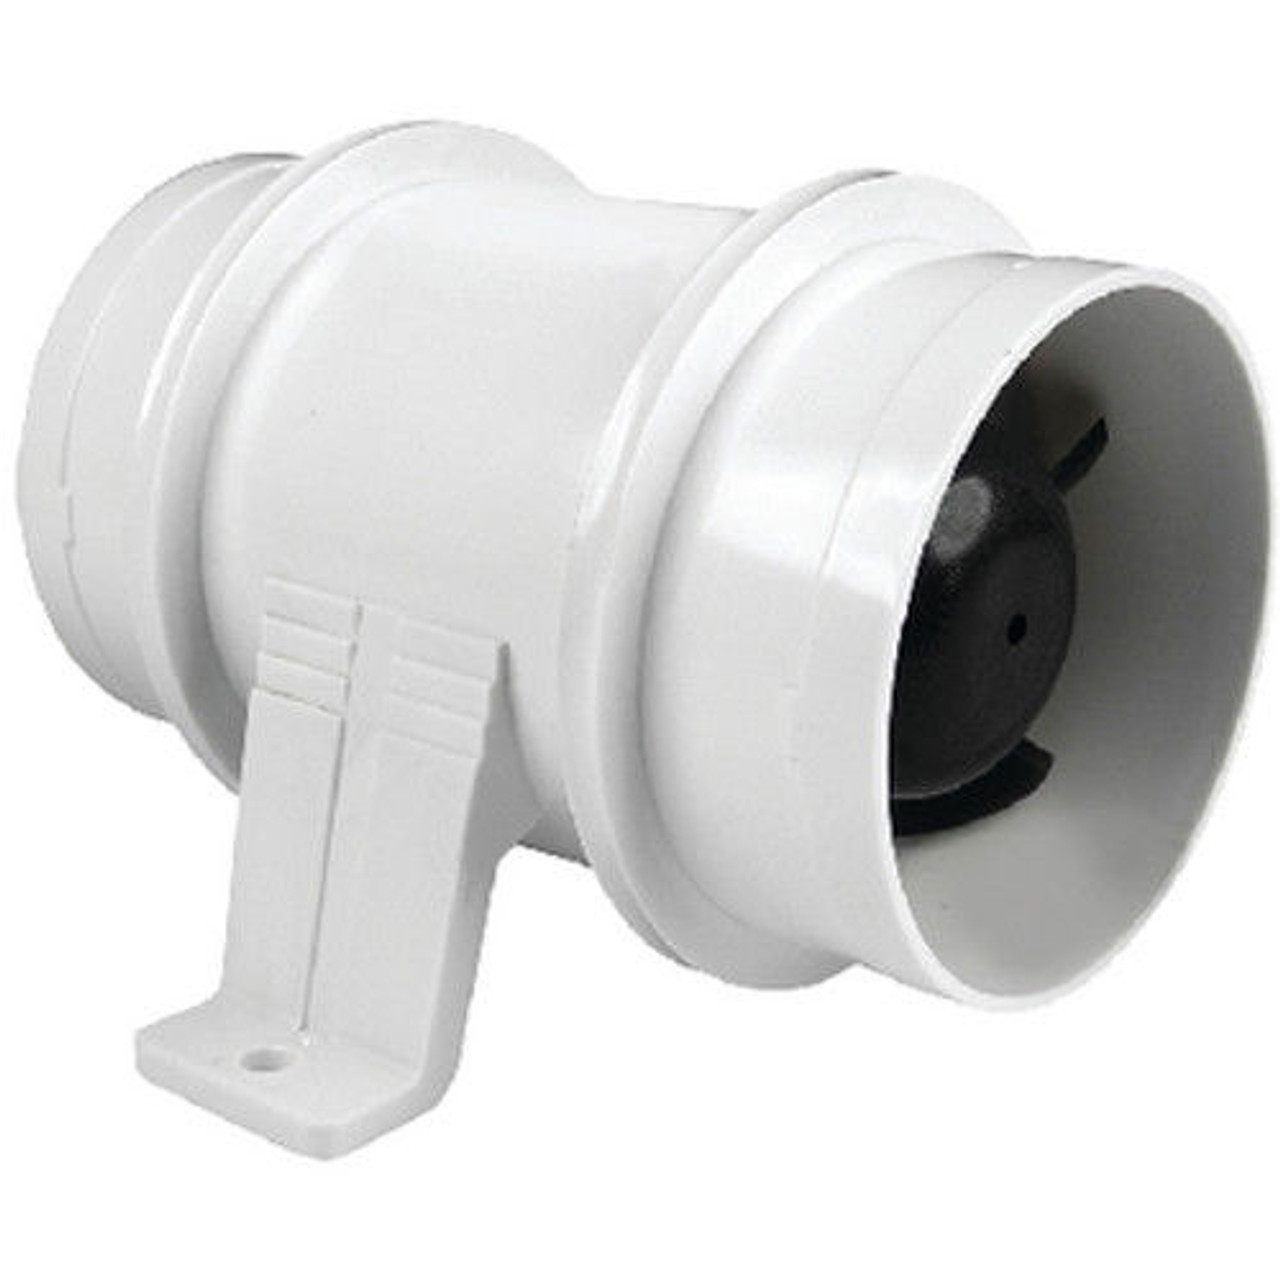 4 Inch Intake and Exhaust 240 CFM Ventilation Bilge Blower for Boats